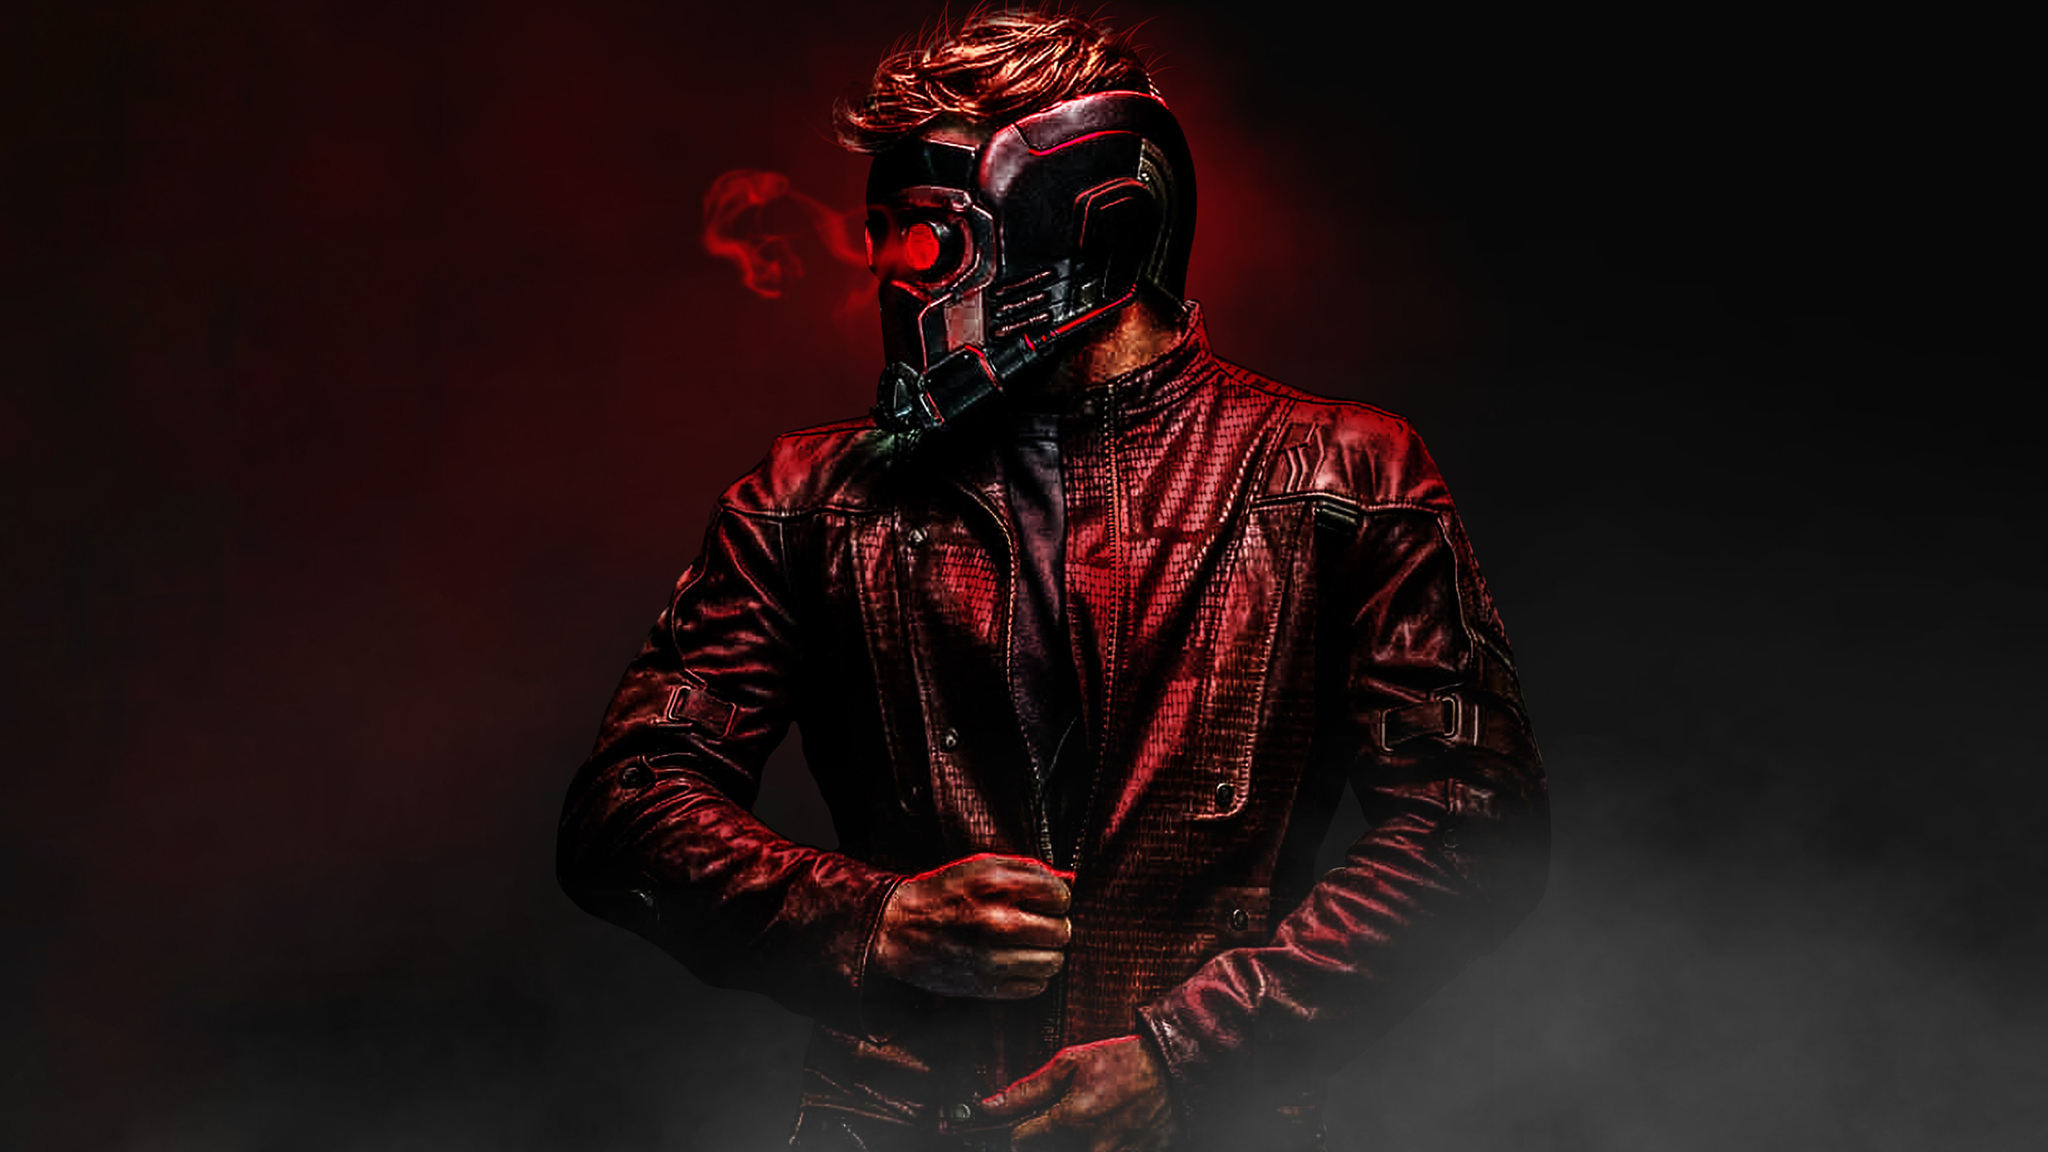 Guardians Of The Galaxy Star Lord Abstract Art 4k Hd: Download Star Lord Avengers Infinity War Art 2932x2932